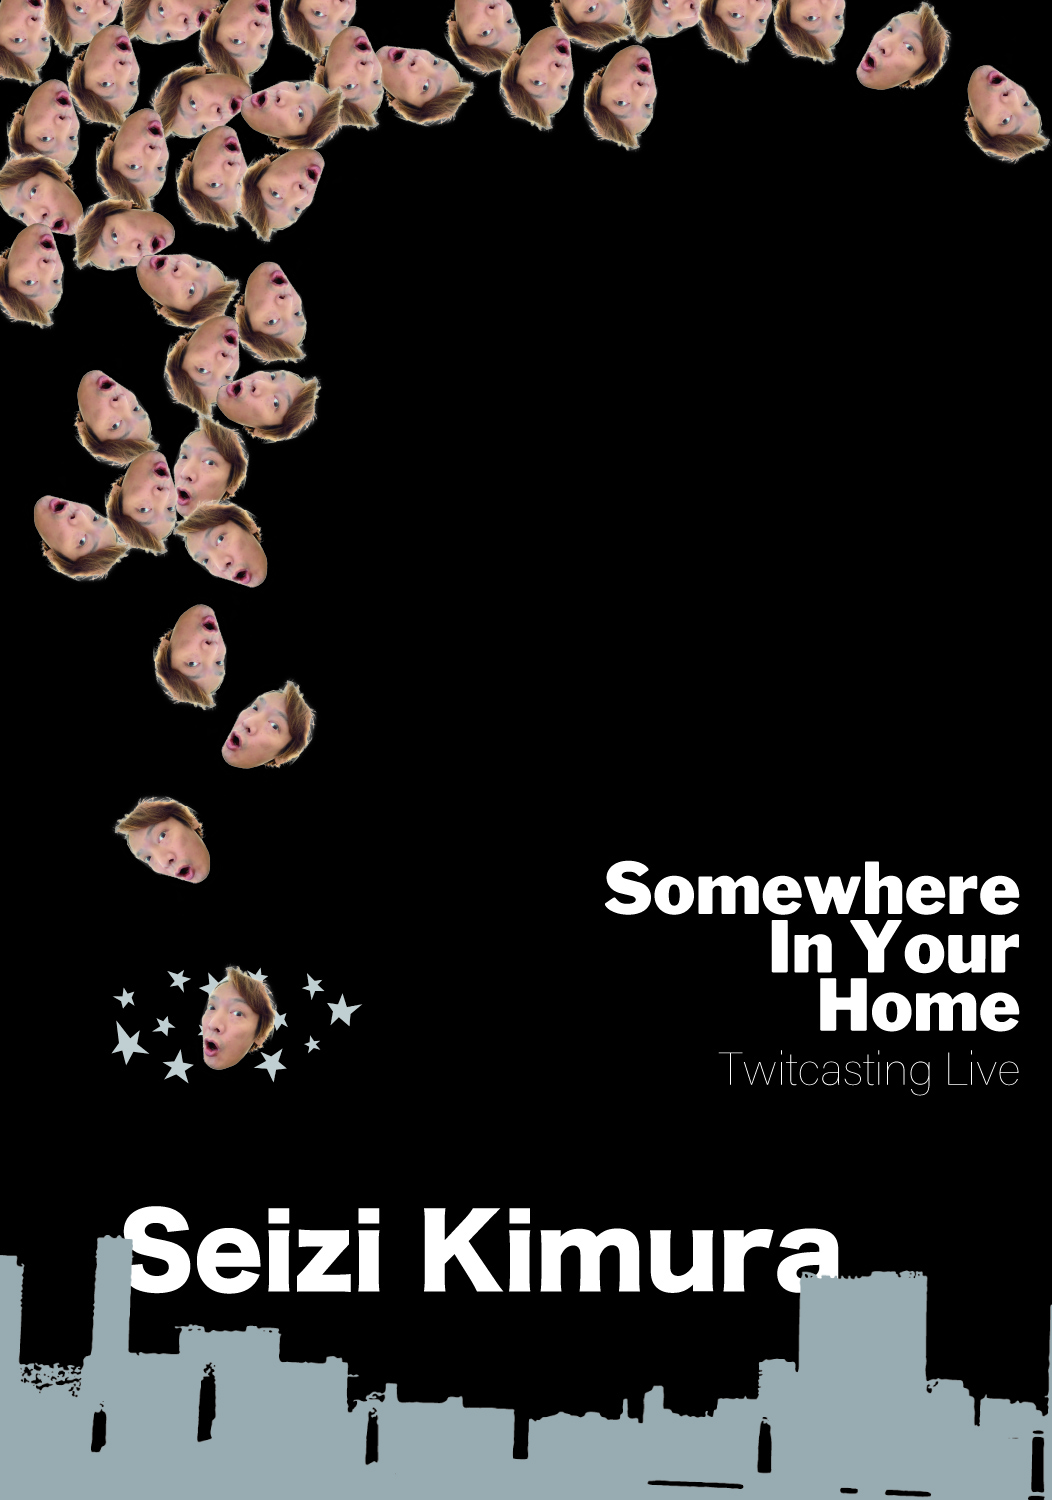 Somewhere In Your Home 2020/5/27